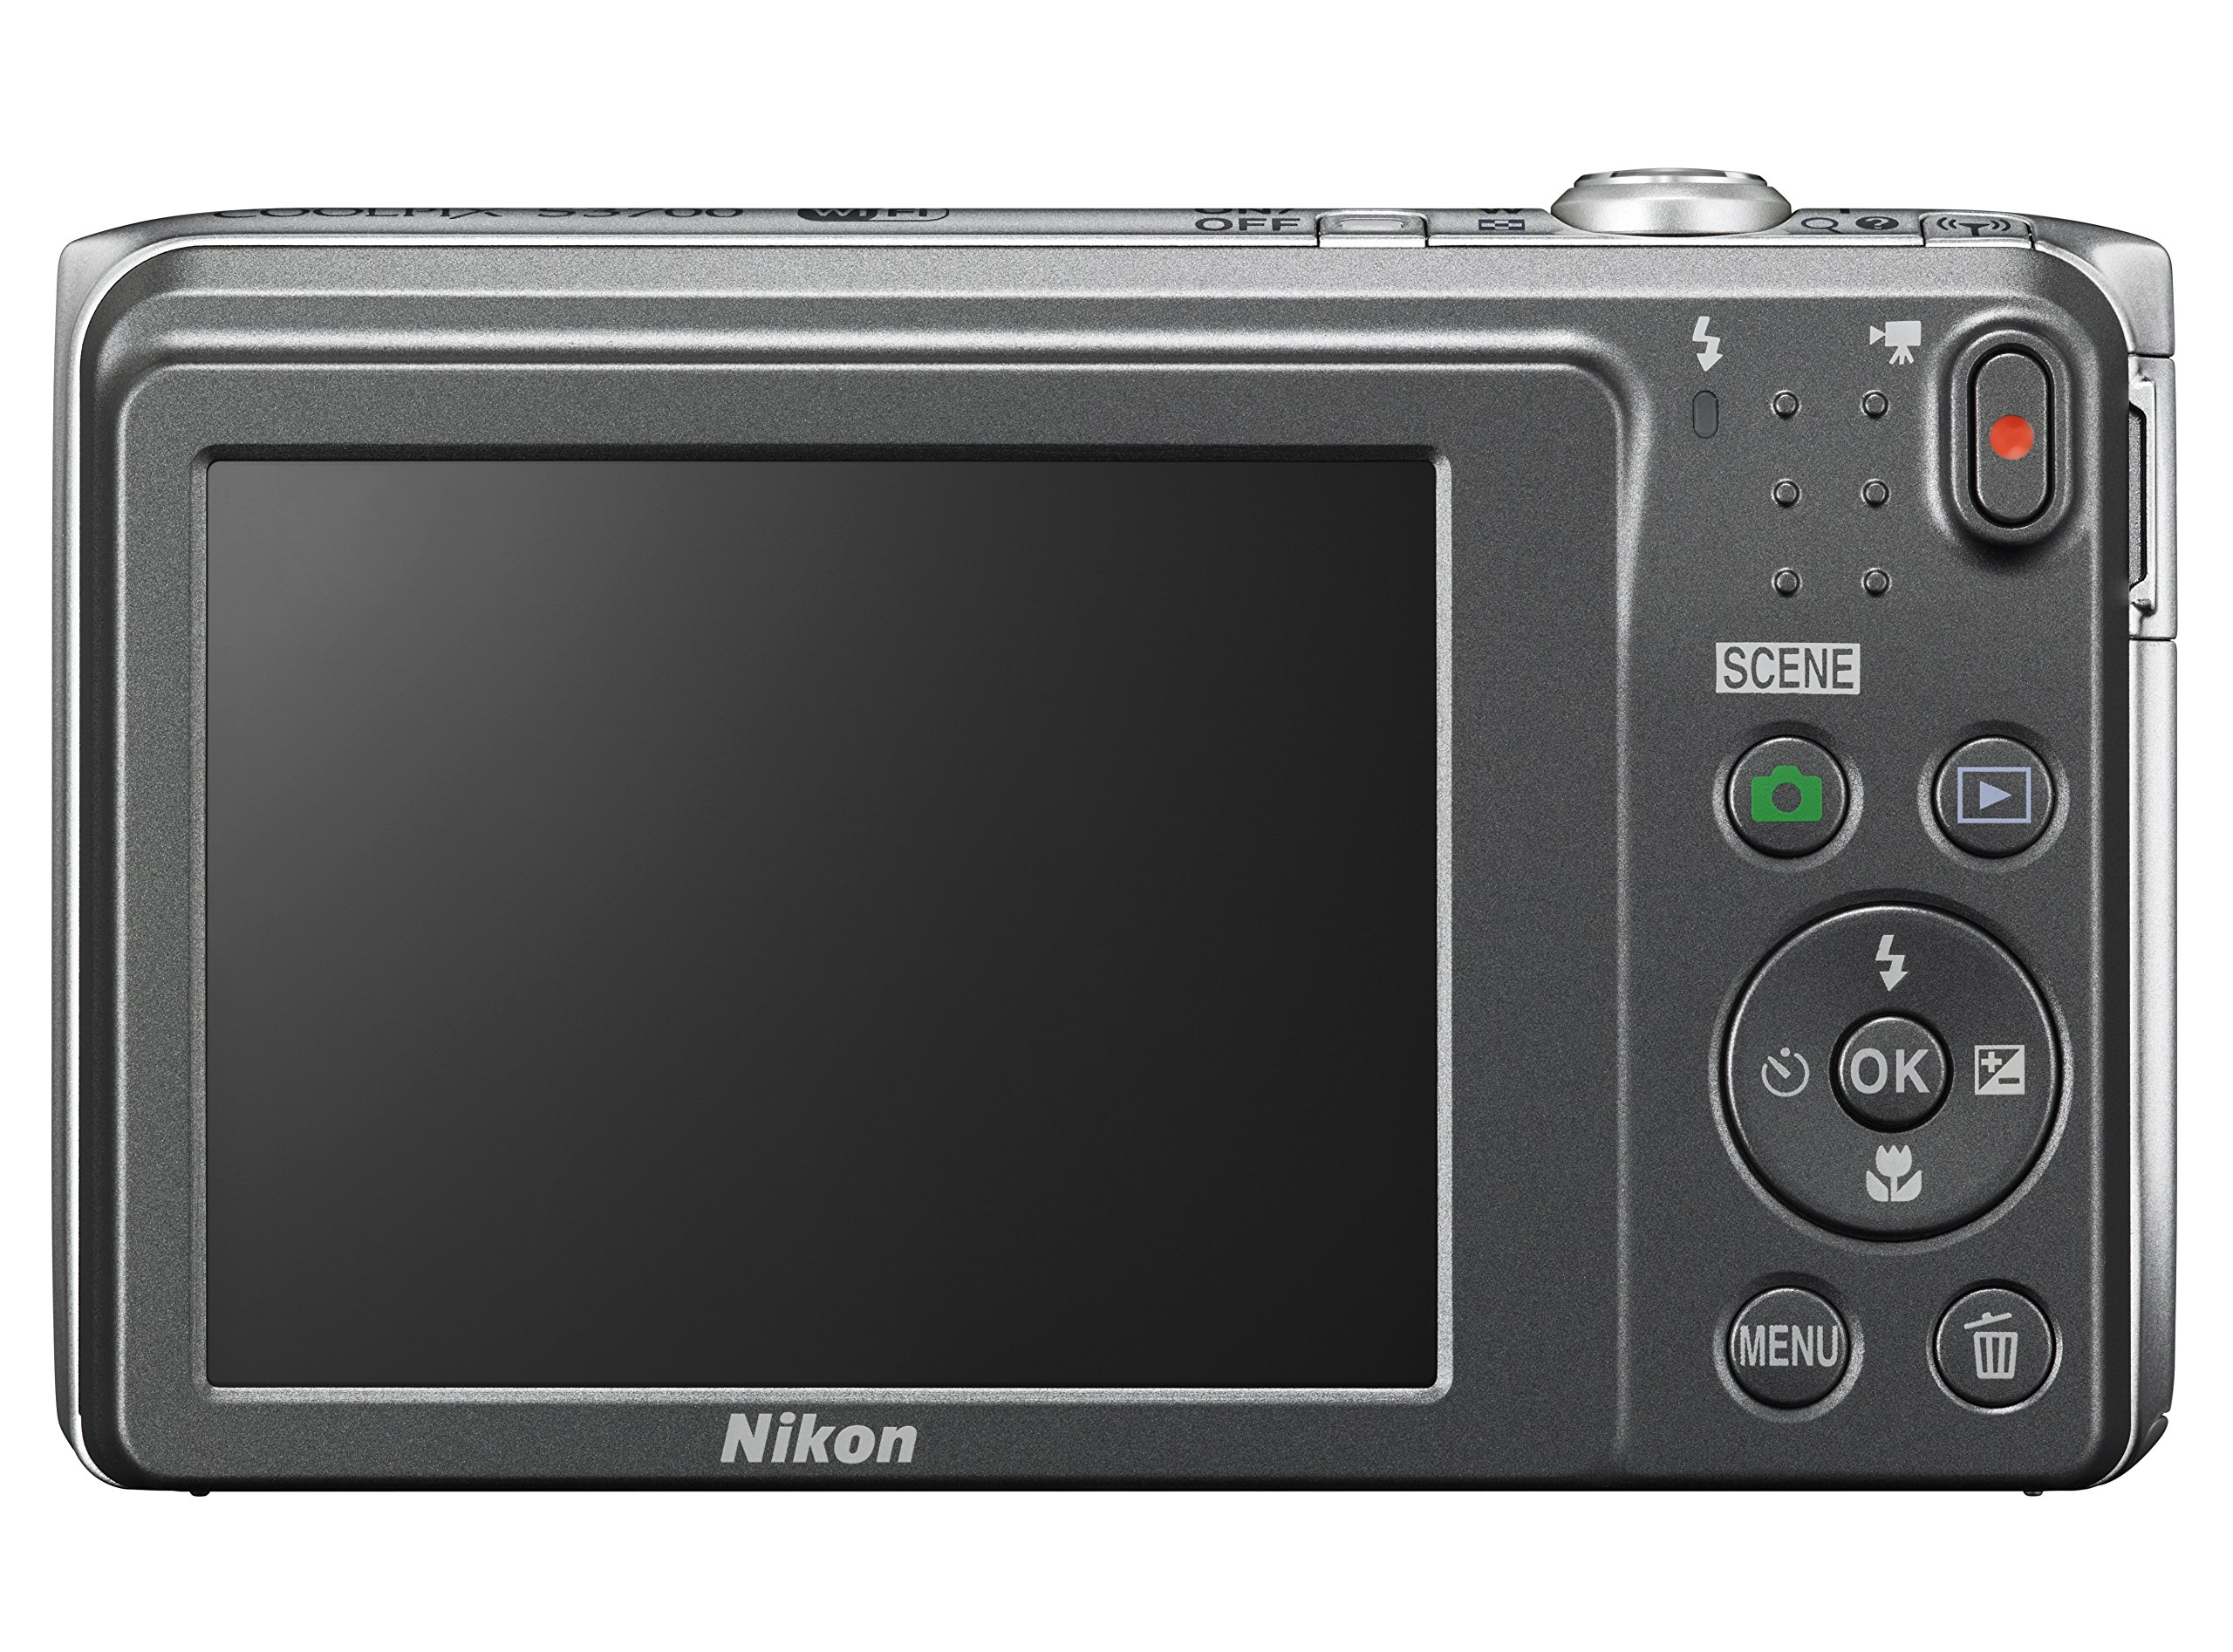 Nikon COOLPIX S3700 Digital Camera with 8x Optical Zoom and Built-In Wi-Fi (Silver) by Nikon (Image #2)